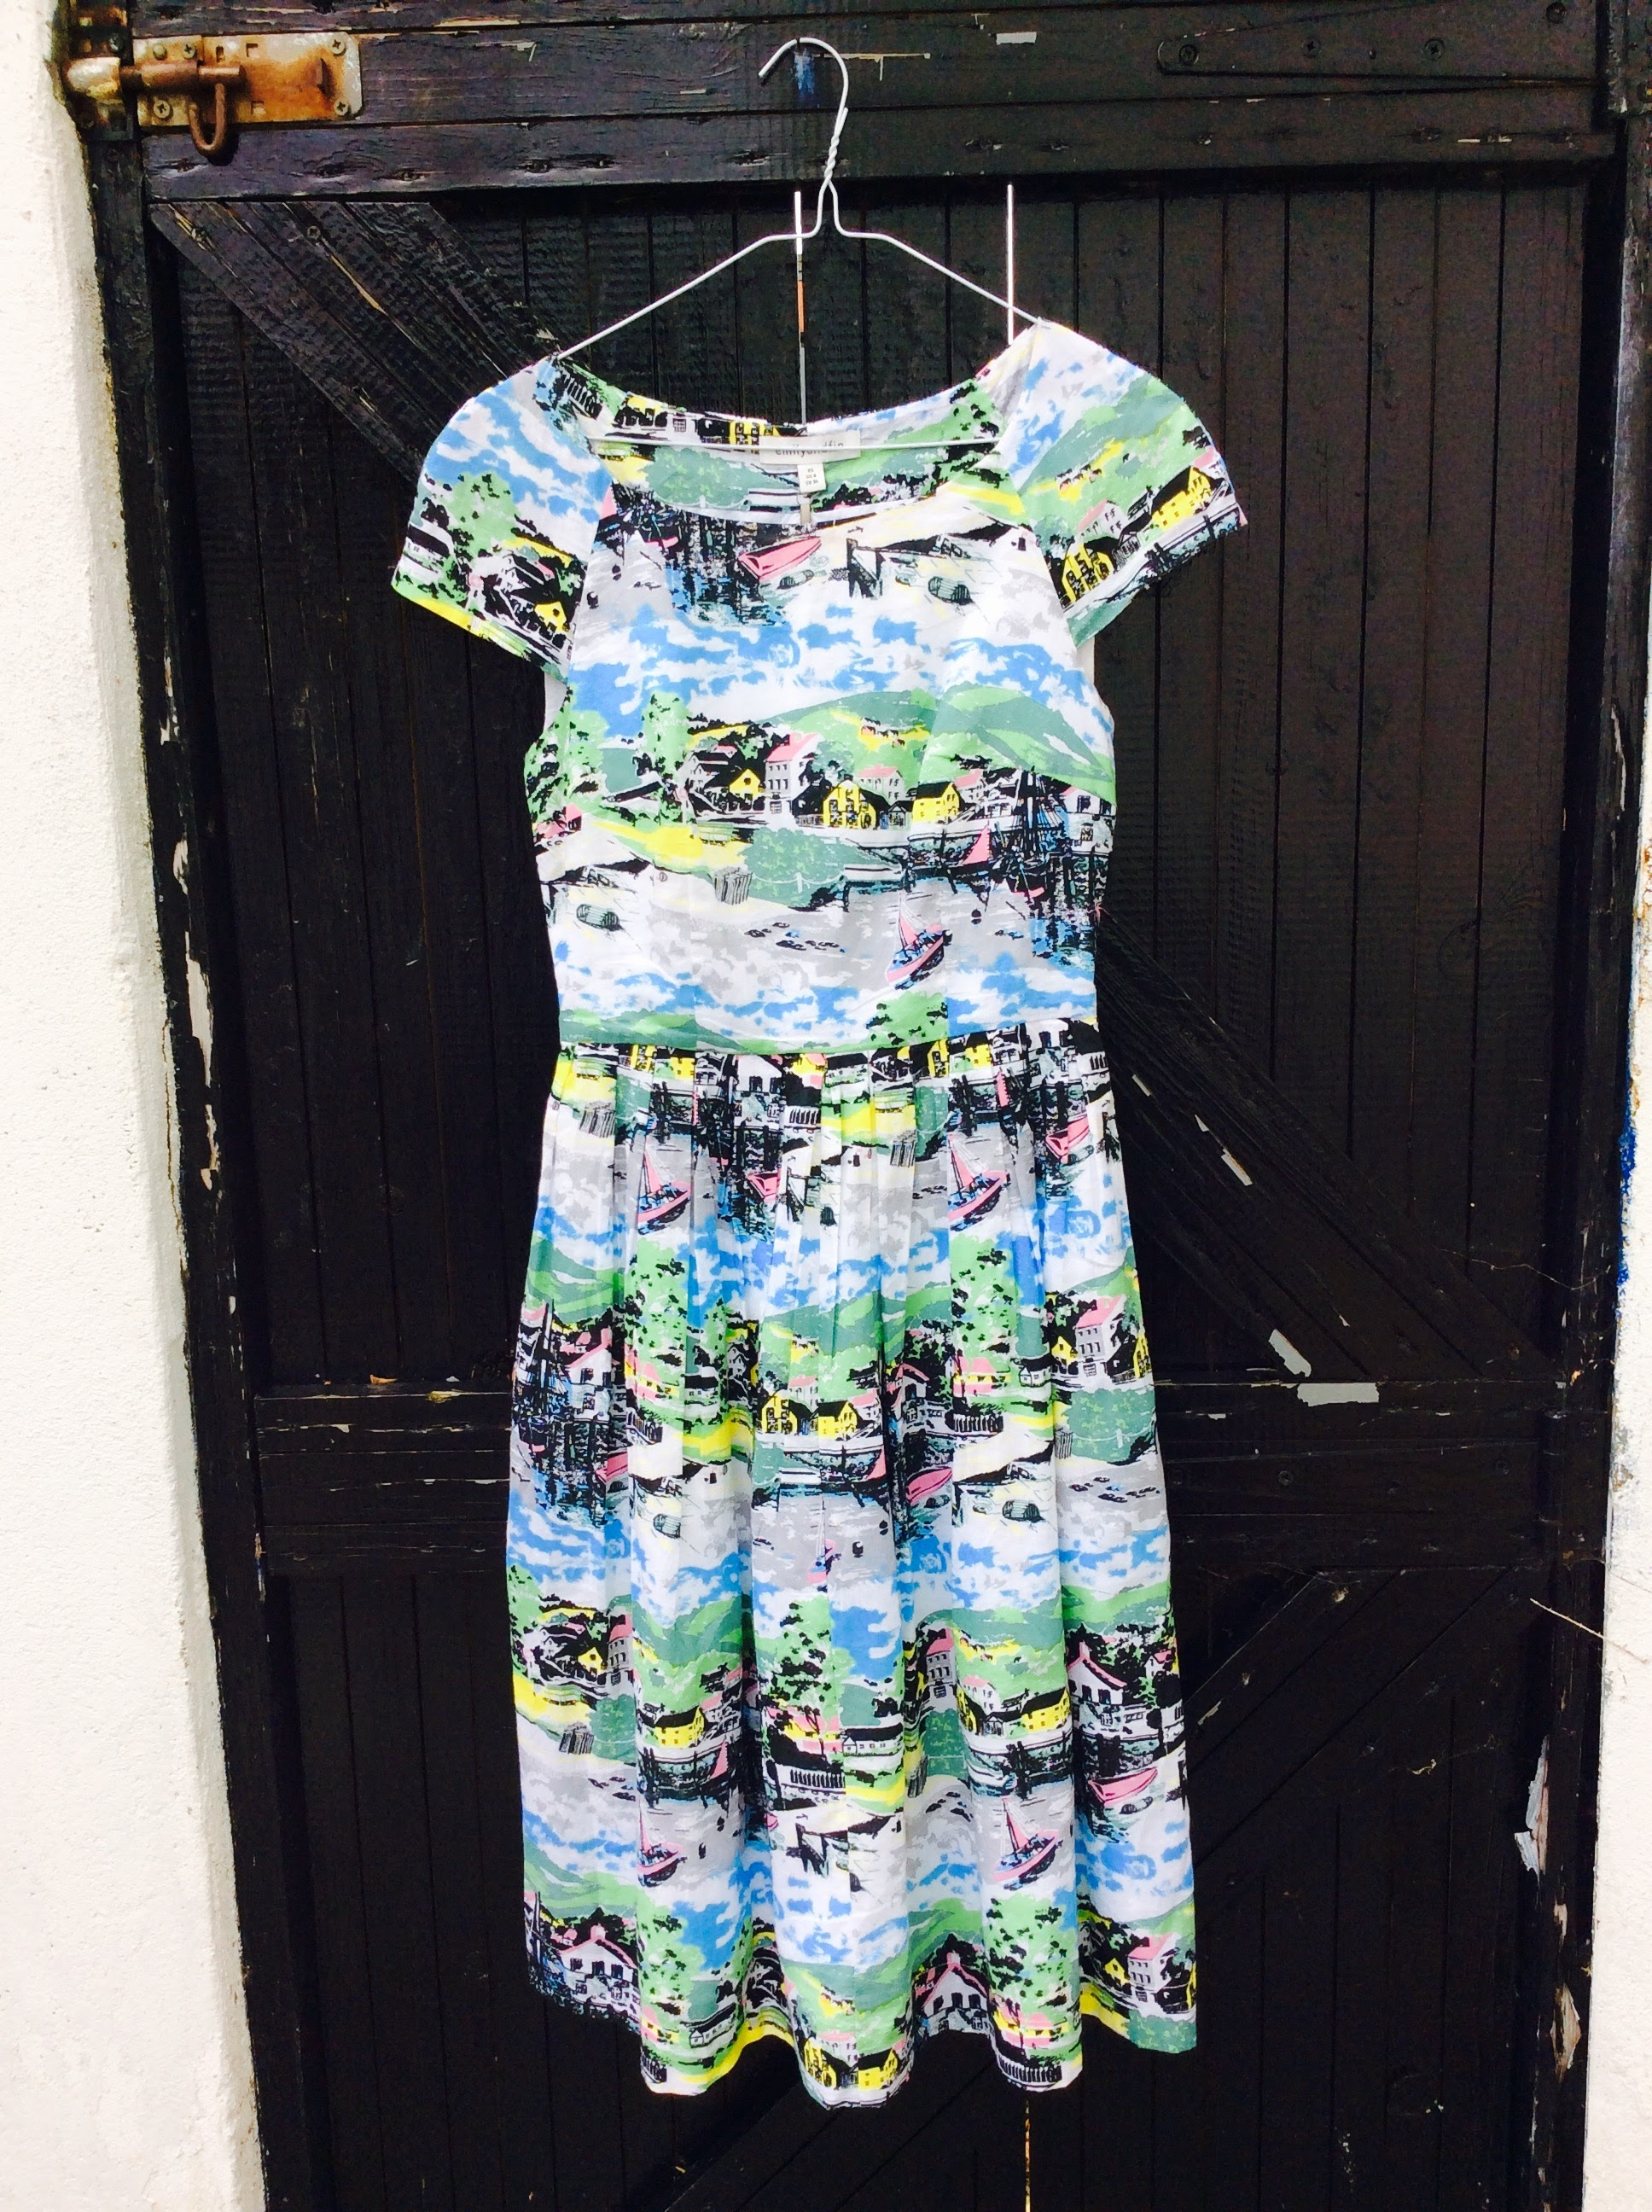 Closer look at the fab vintage print on this cute dress.